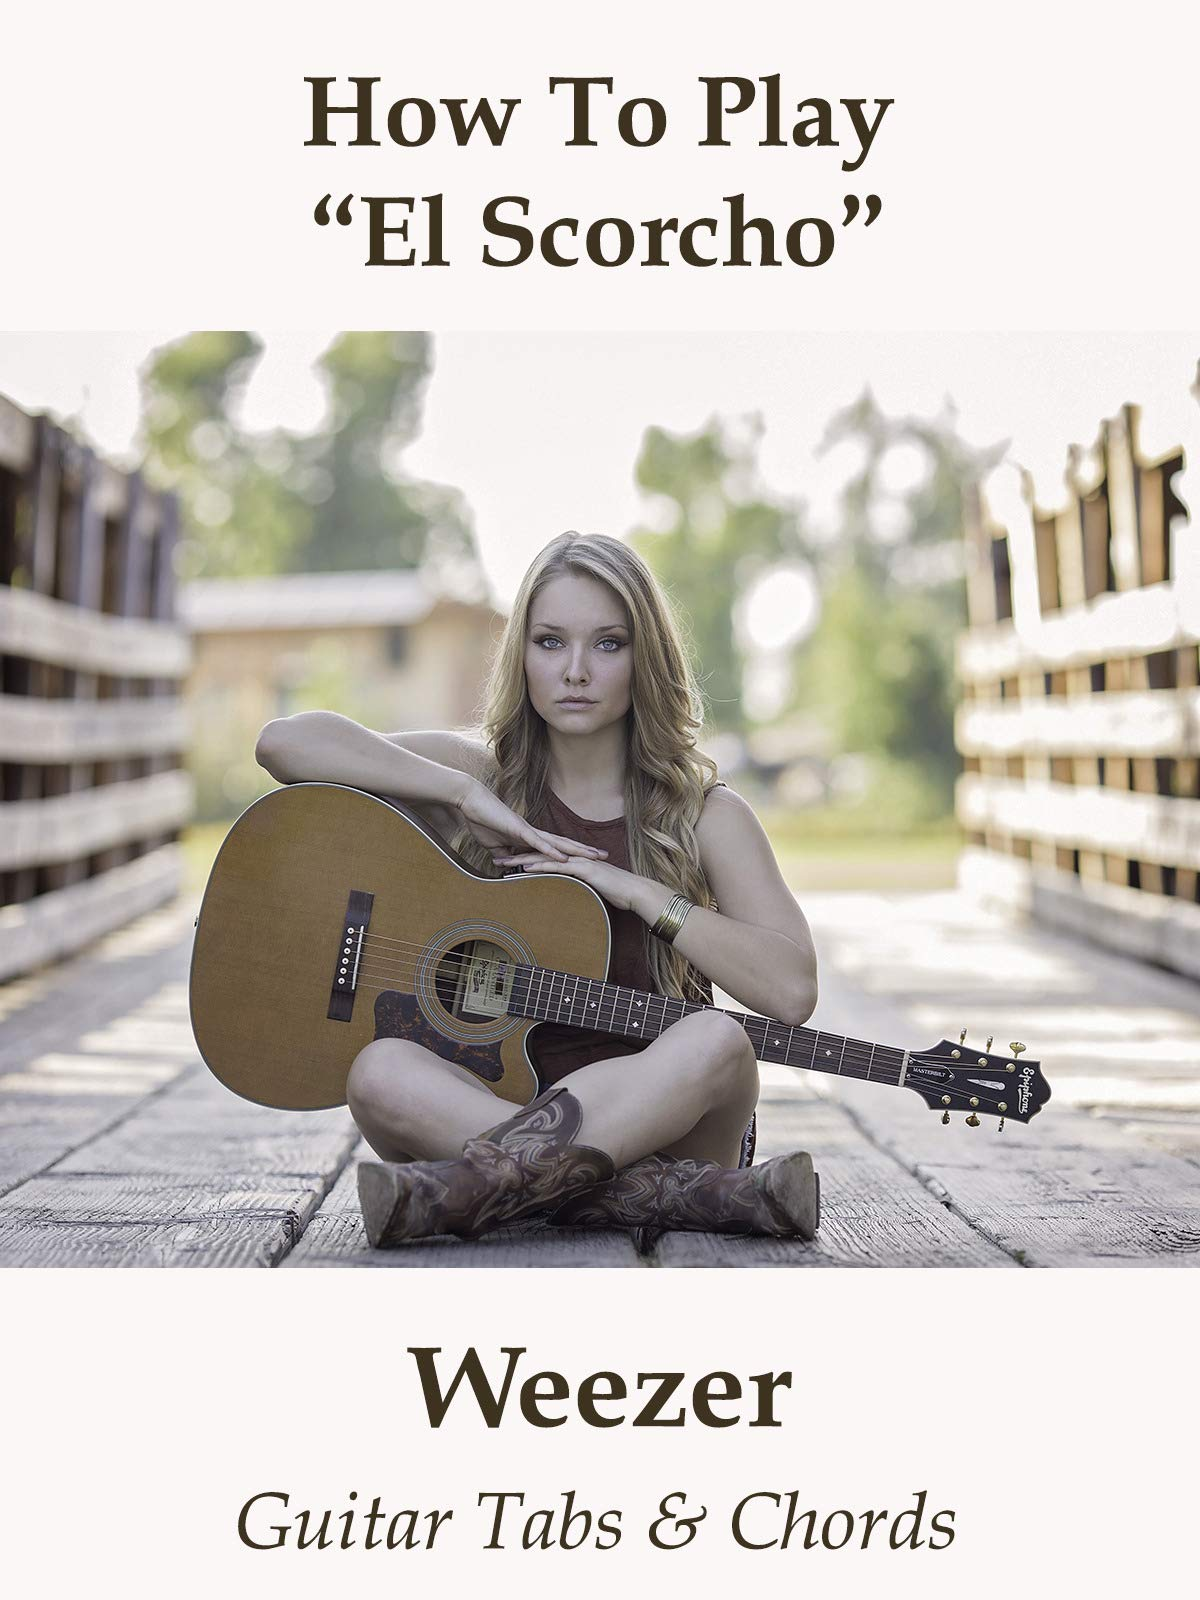 Watch How To Play El Scorcho By Weezer   Guitar Tabs & Chords ...